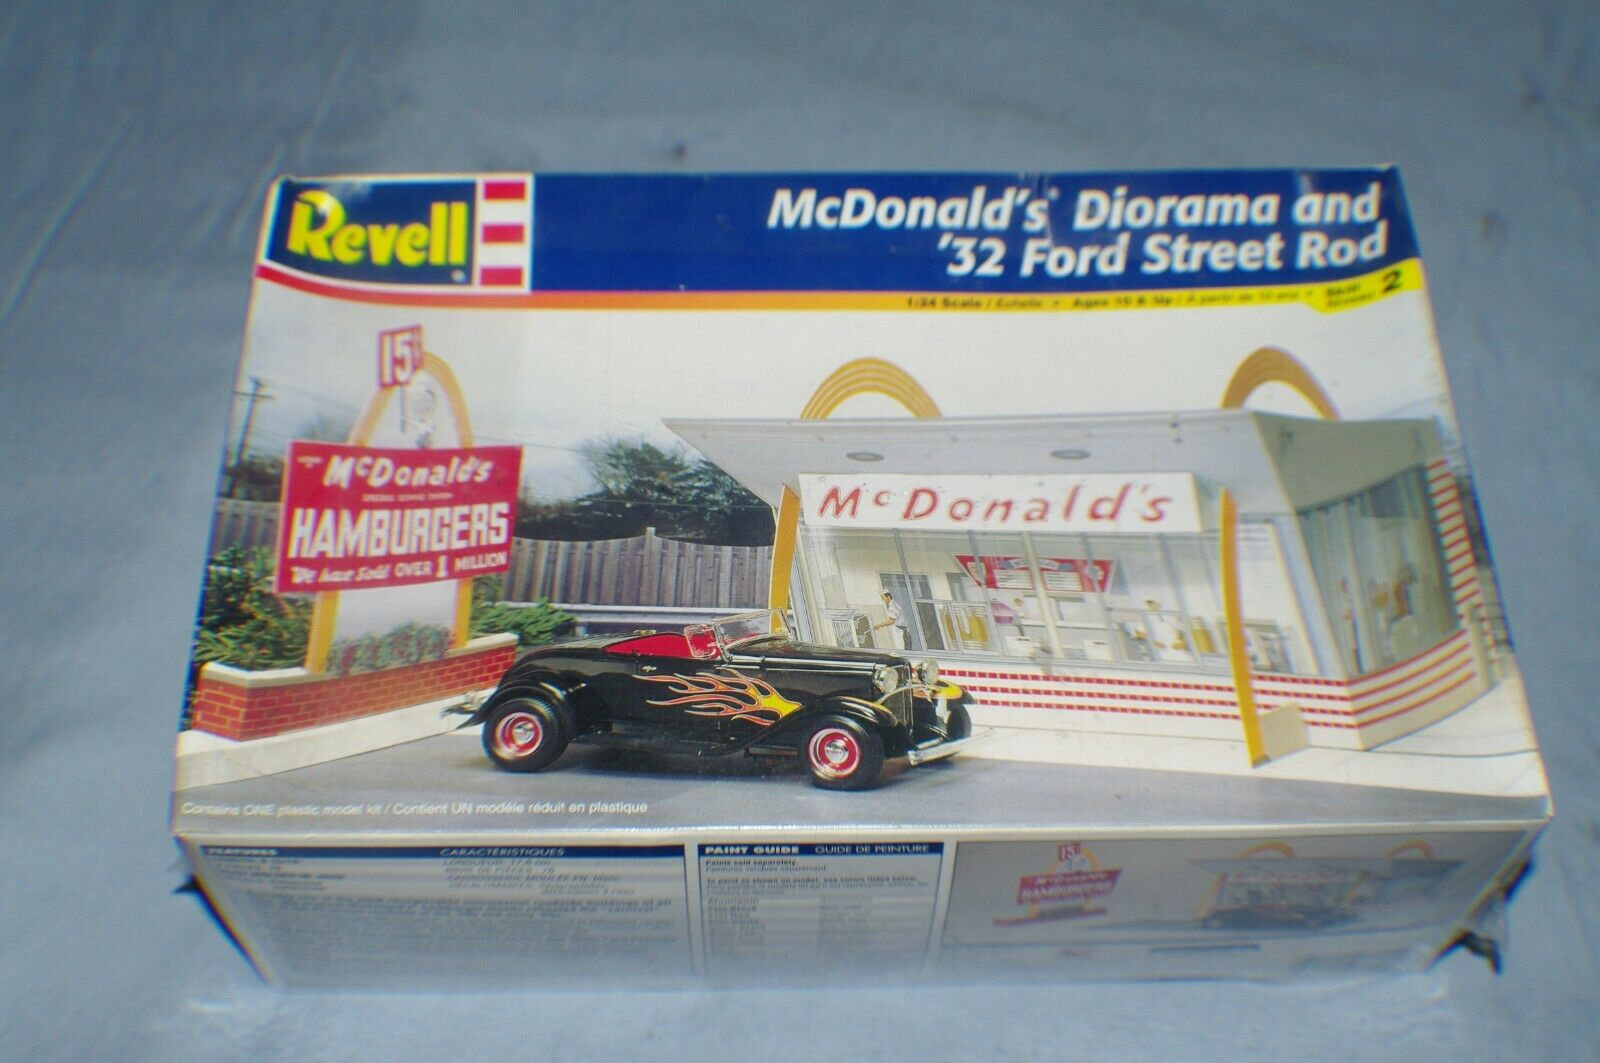 1 25TH SCALE '32 FORD STREET ROD MCDONALDS DIORAMA MODEL KIT SEALED